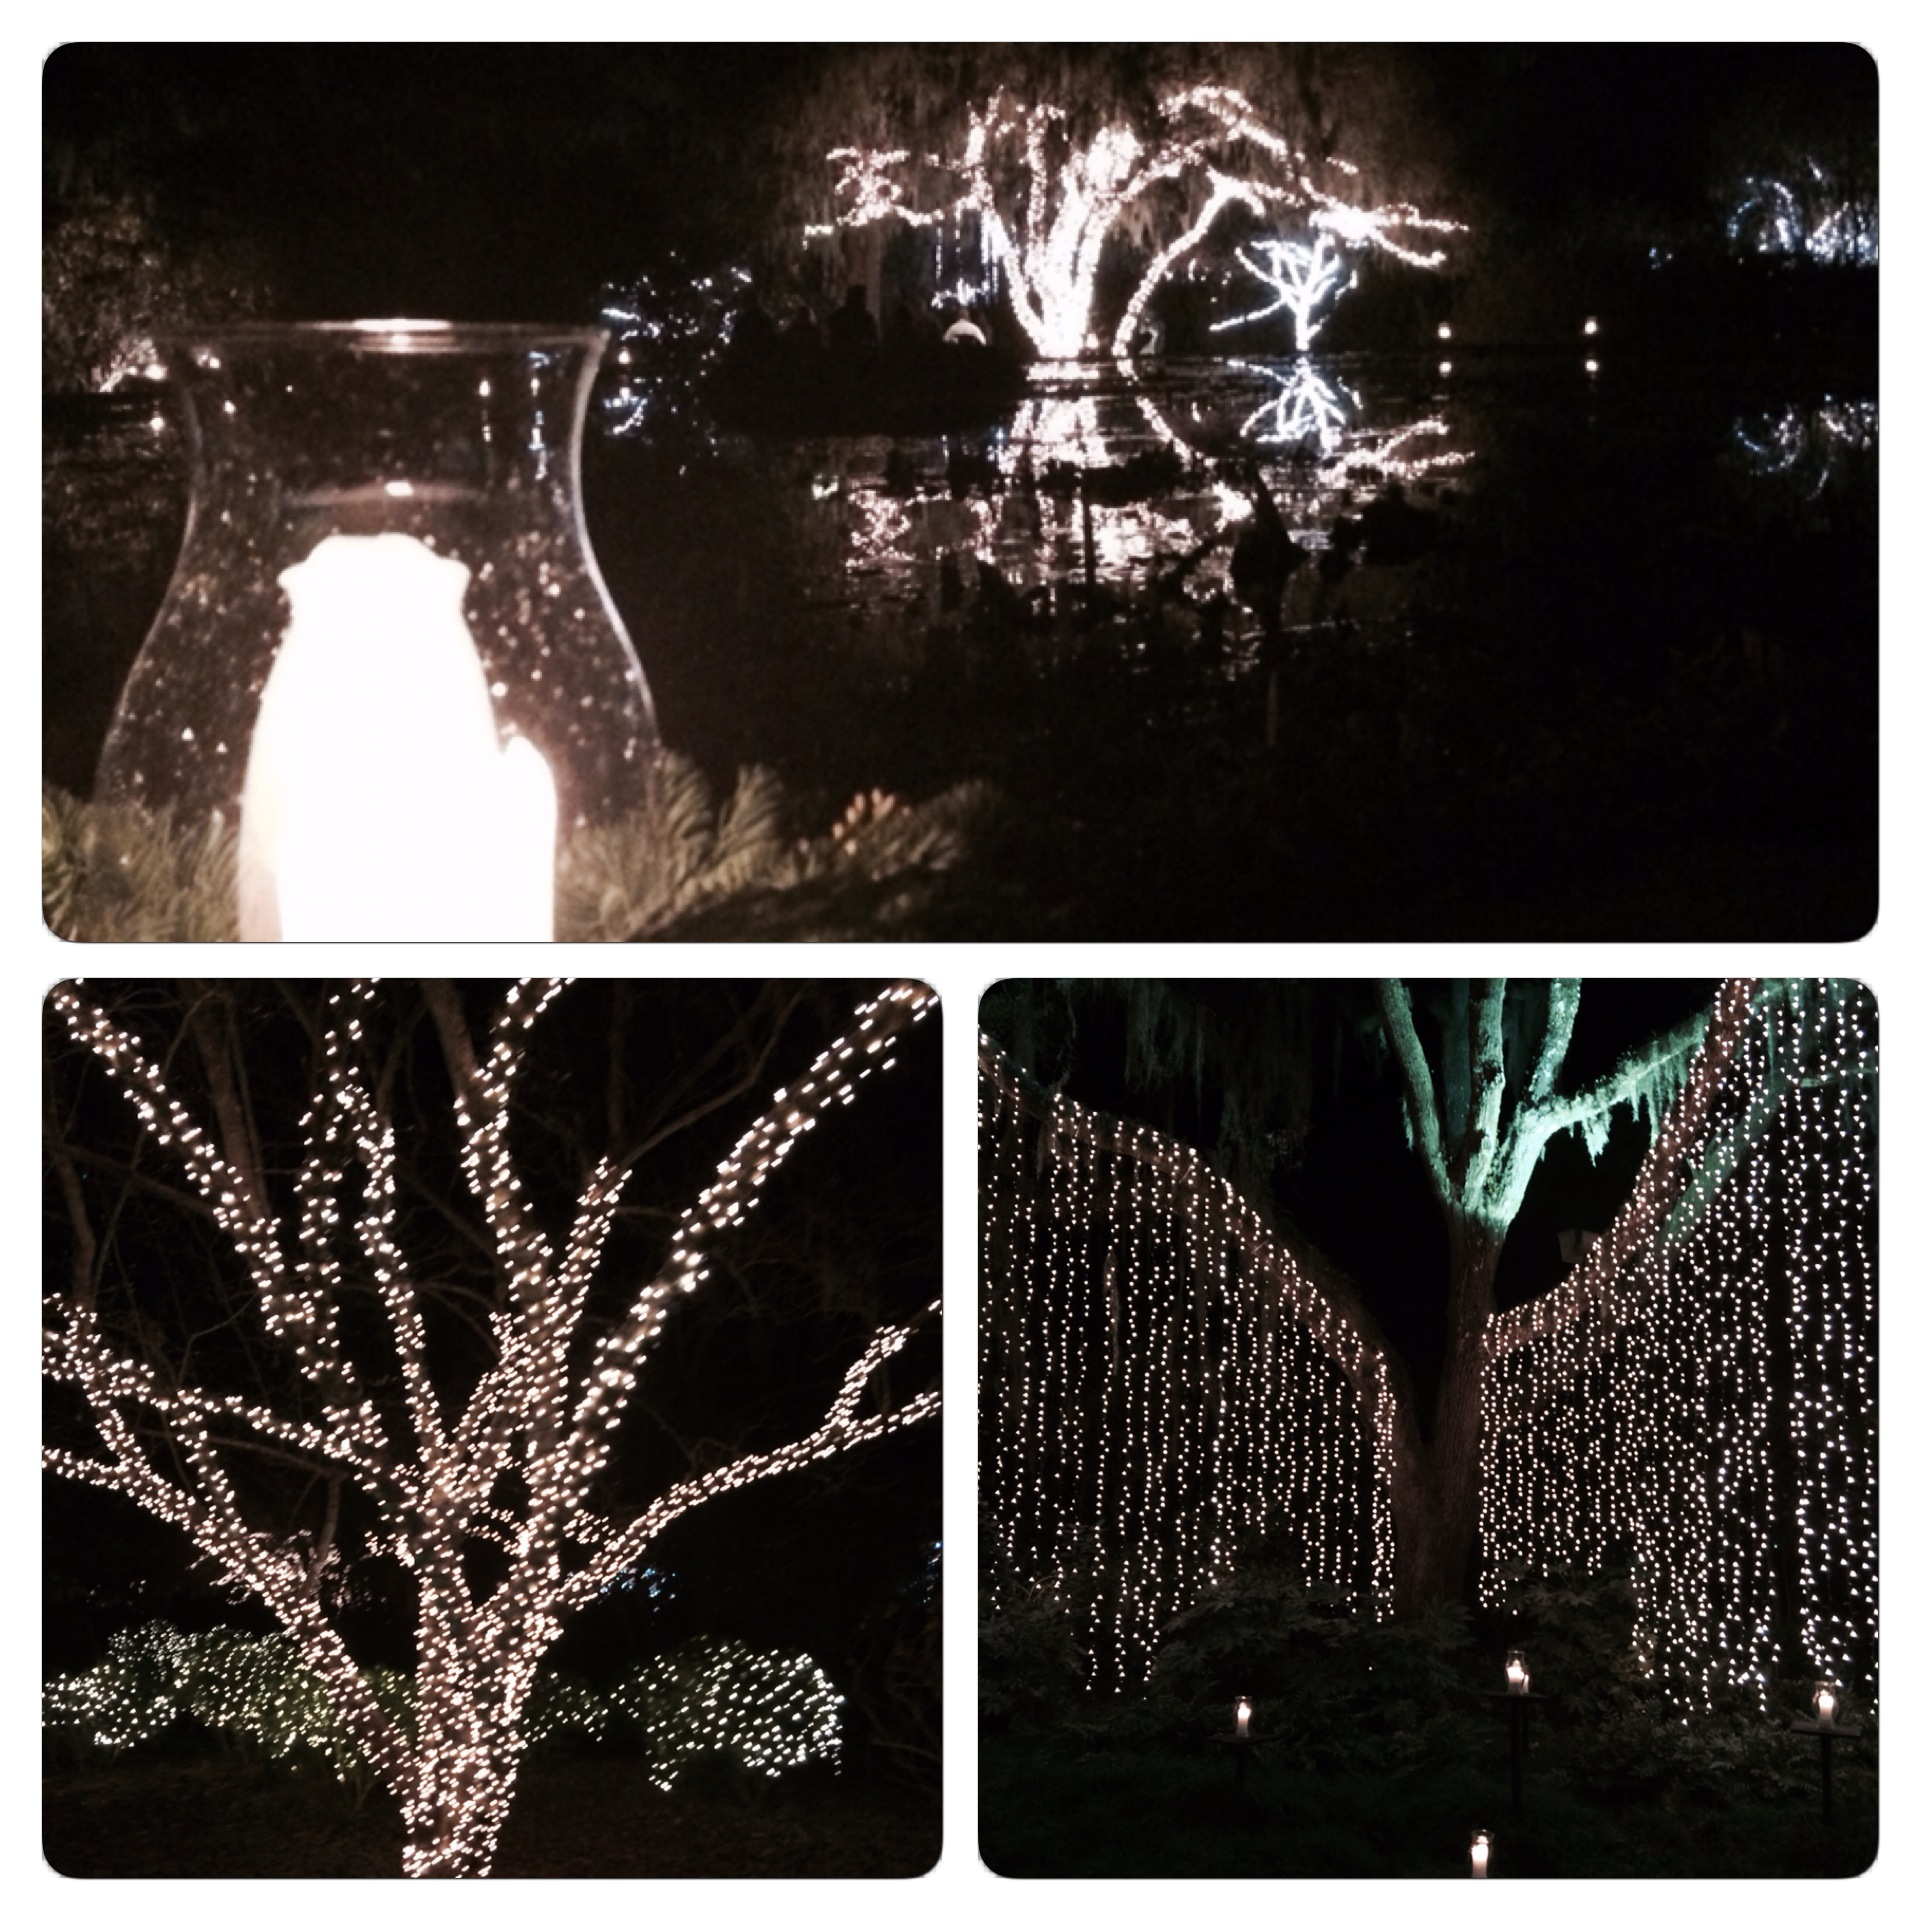 Some of the photos I took of the lights at Night of a Thousand Candles.